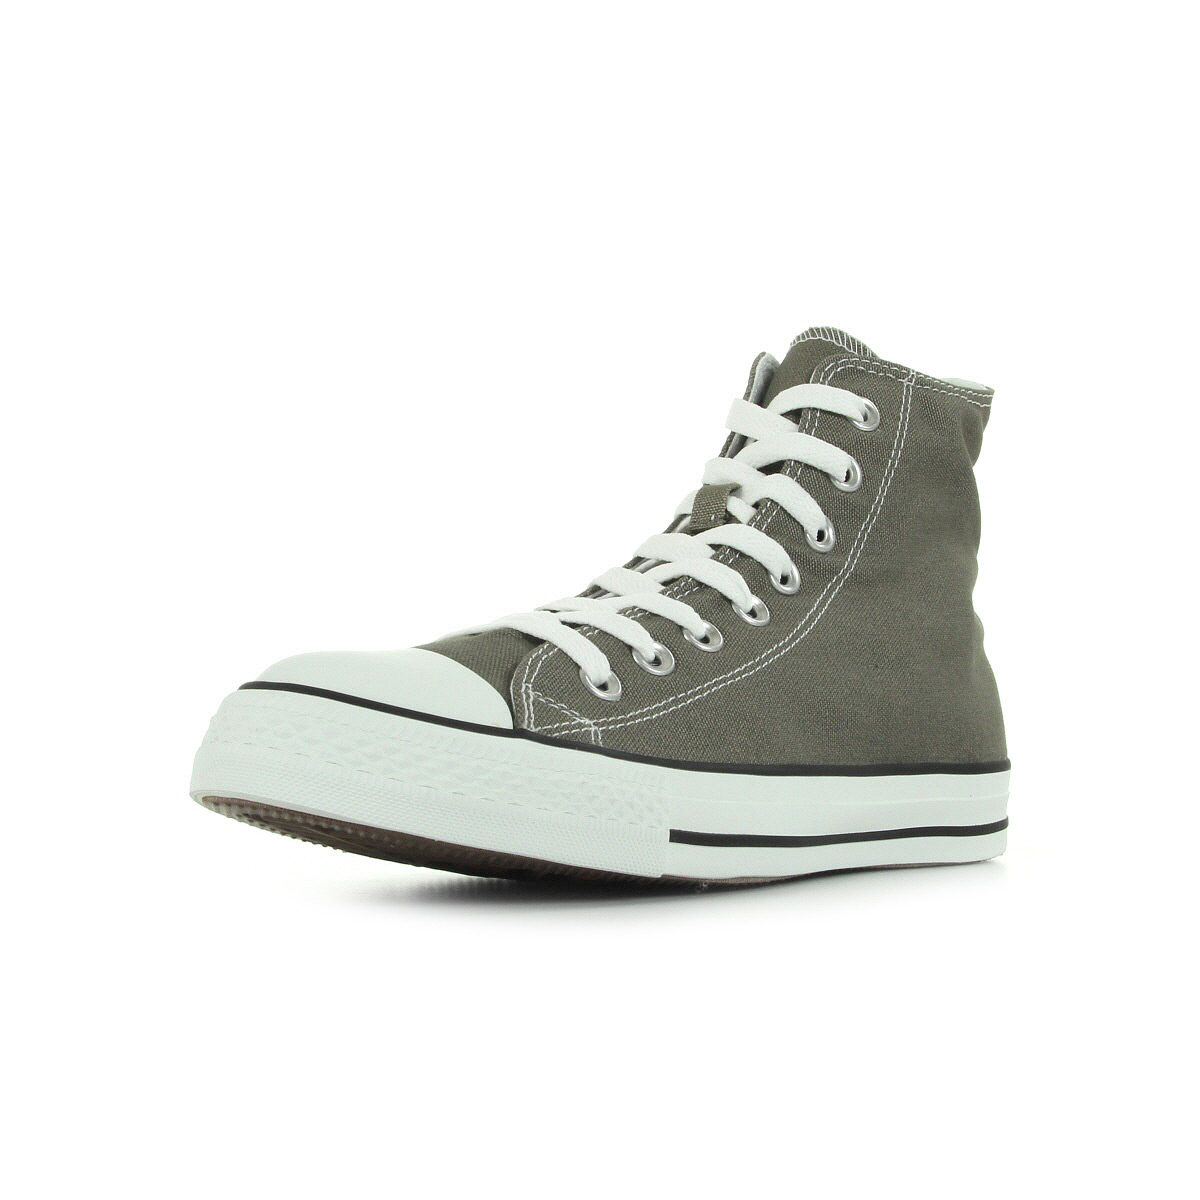 Homme chaussures sneakers CONVERSE CHUCK TAYLOR 1J793